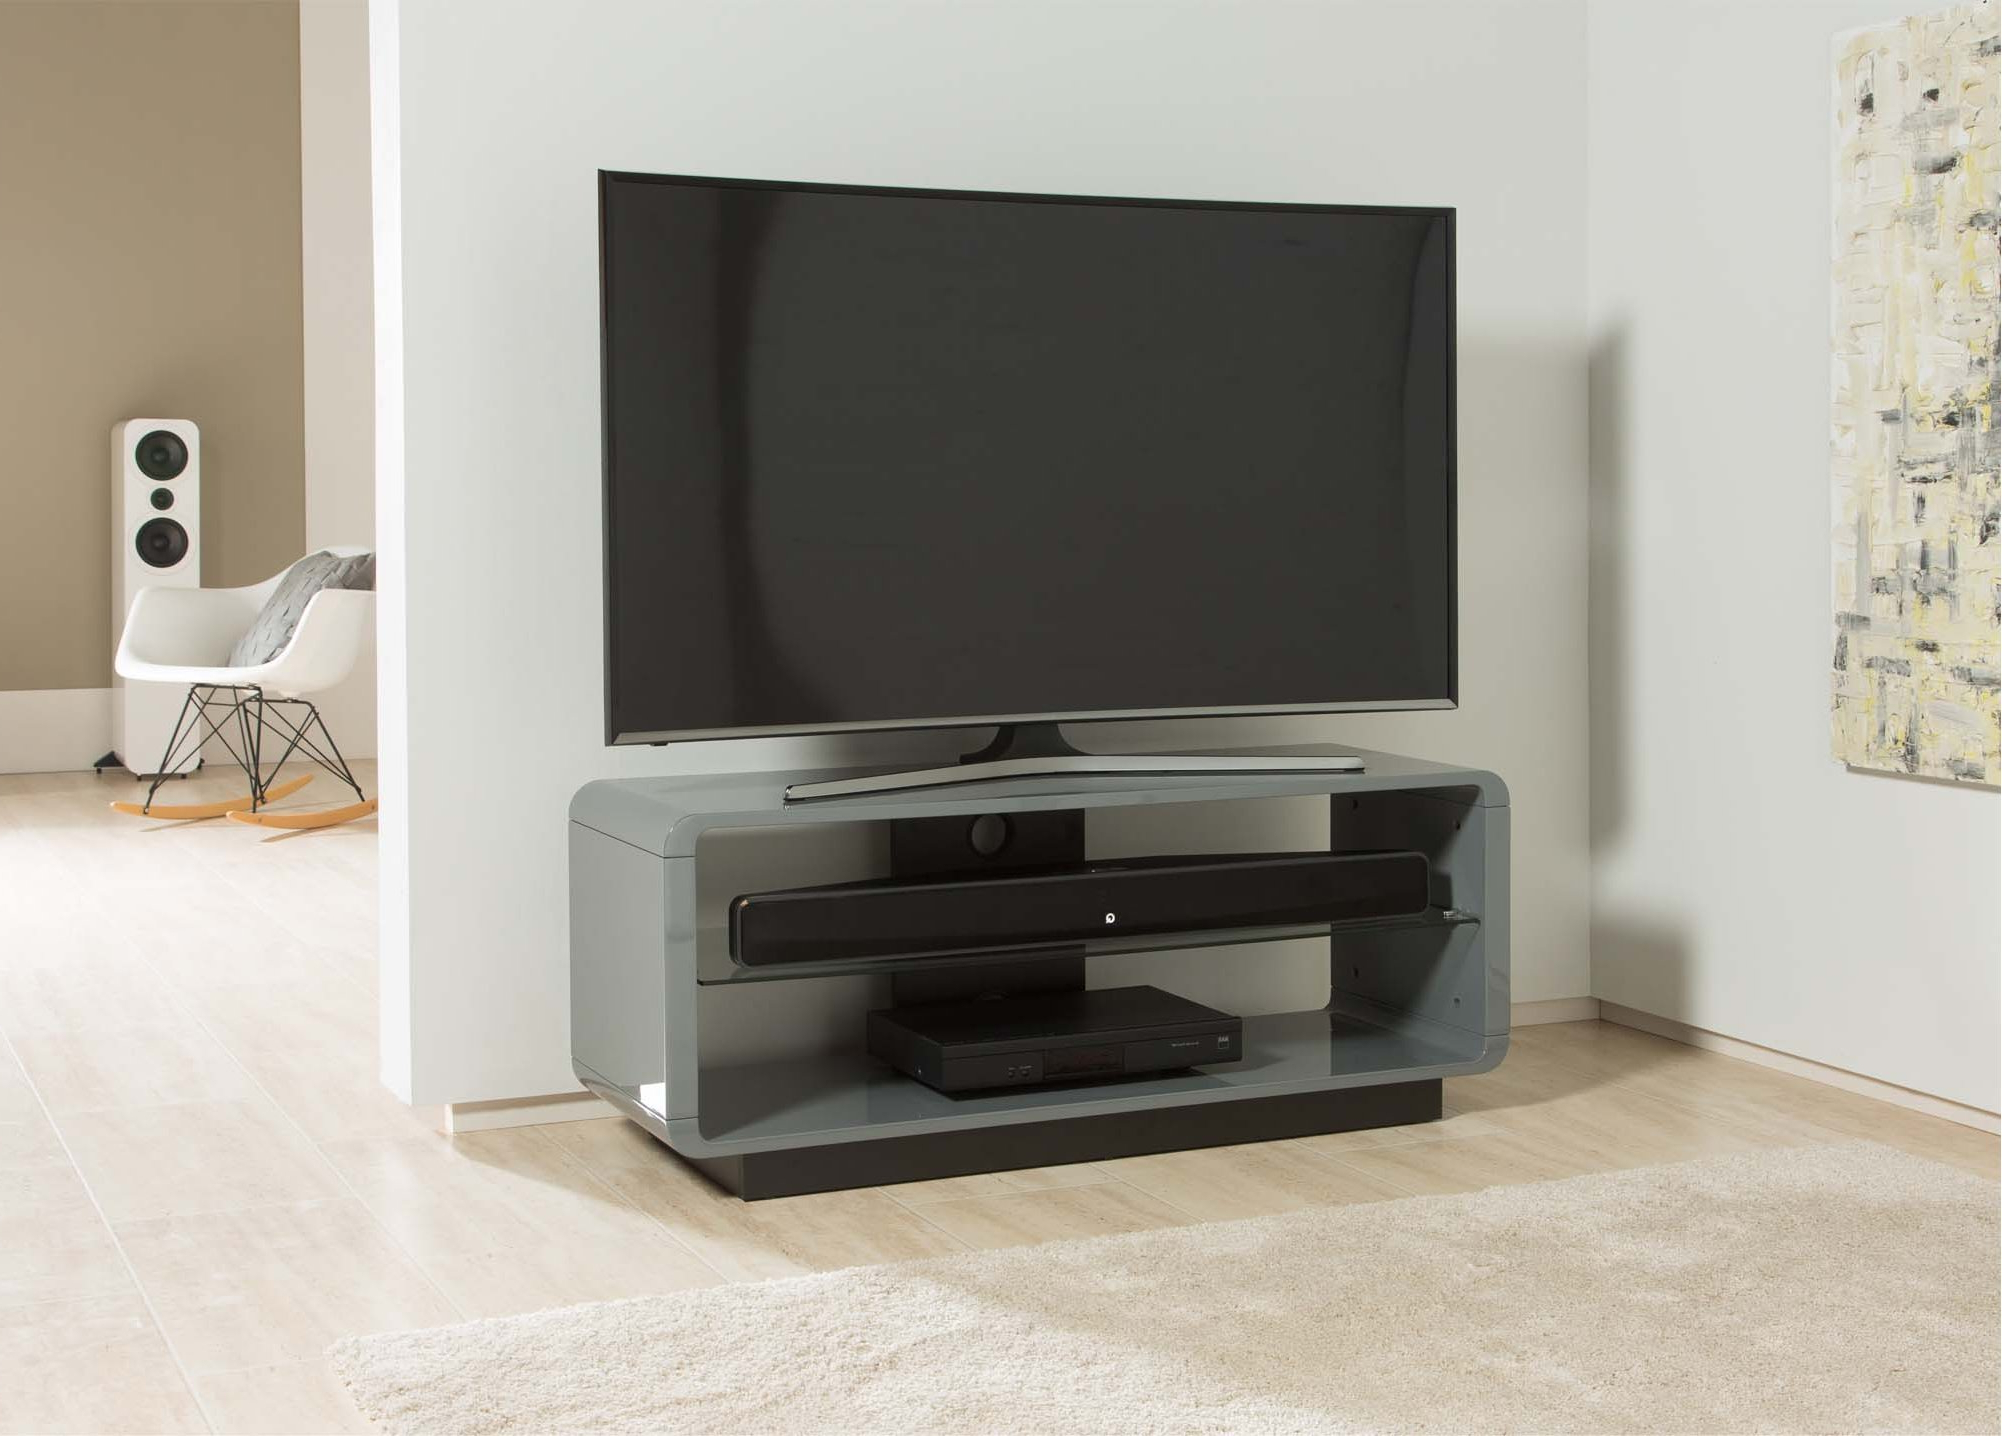 Alphason Adlu1200 Gry Tv Stands Pertaining To Trendy Walton Grey 60 Inch Tv Stands (View 2 of 20)